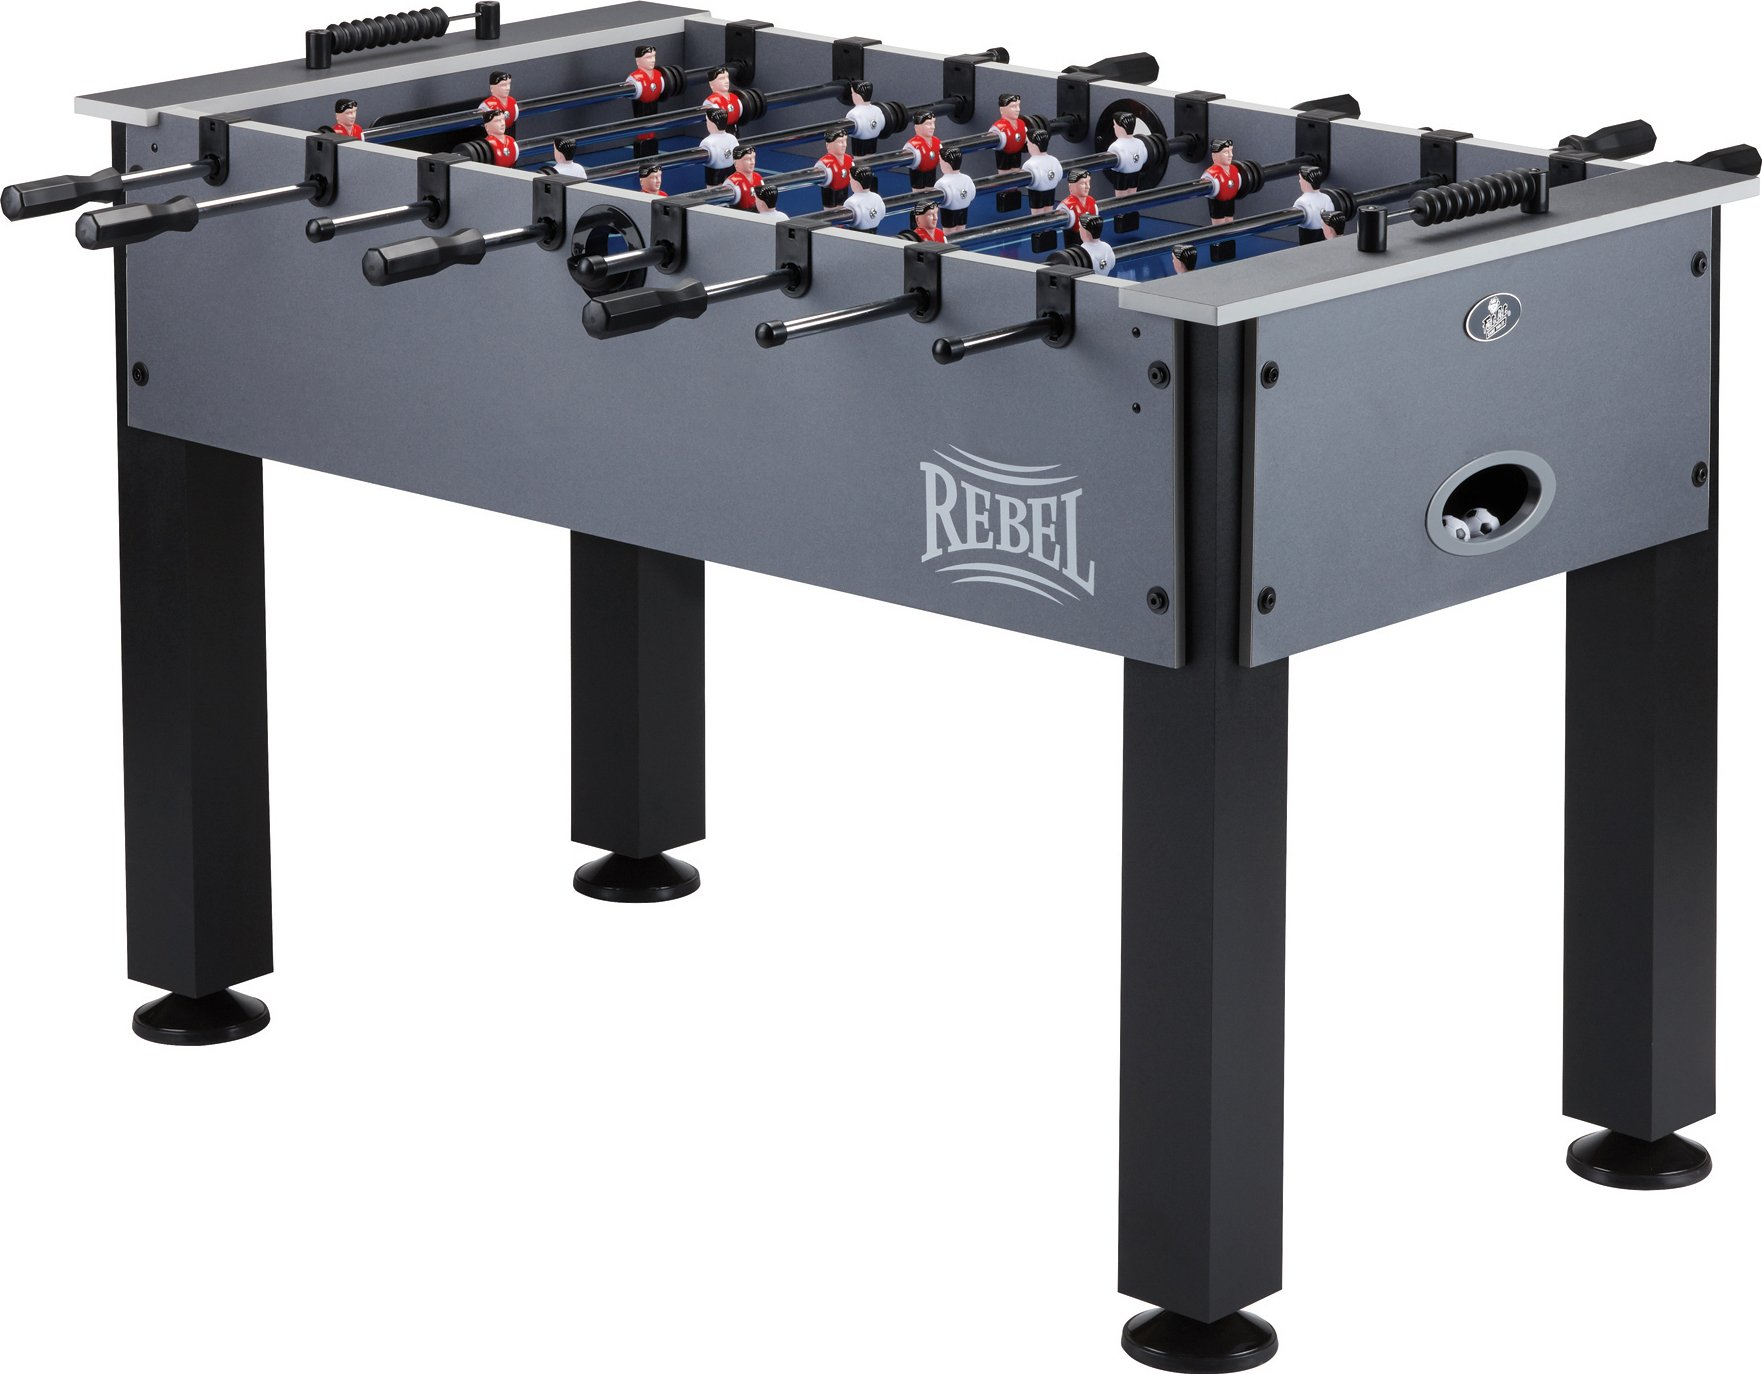 Fat Cat Rebel 4.5' Foosball Table with Easy Snap Rods for Quick Assembly, and Sharp Blue Playing Field and Abacus Scoring by Fat Cat by GLD Products